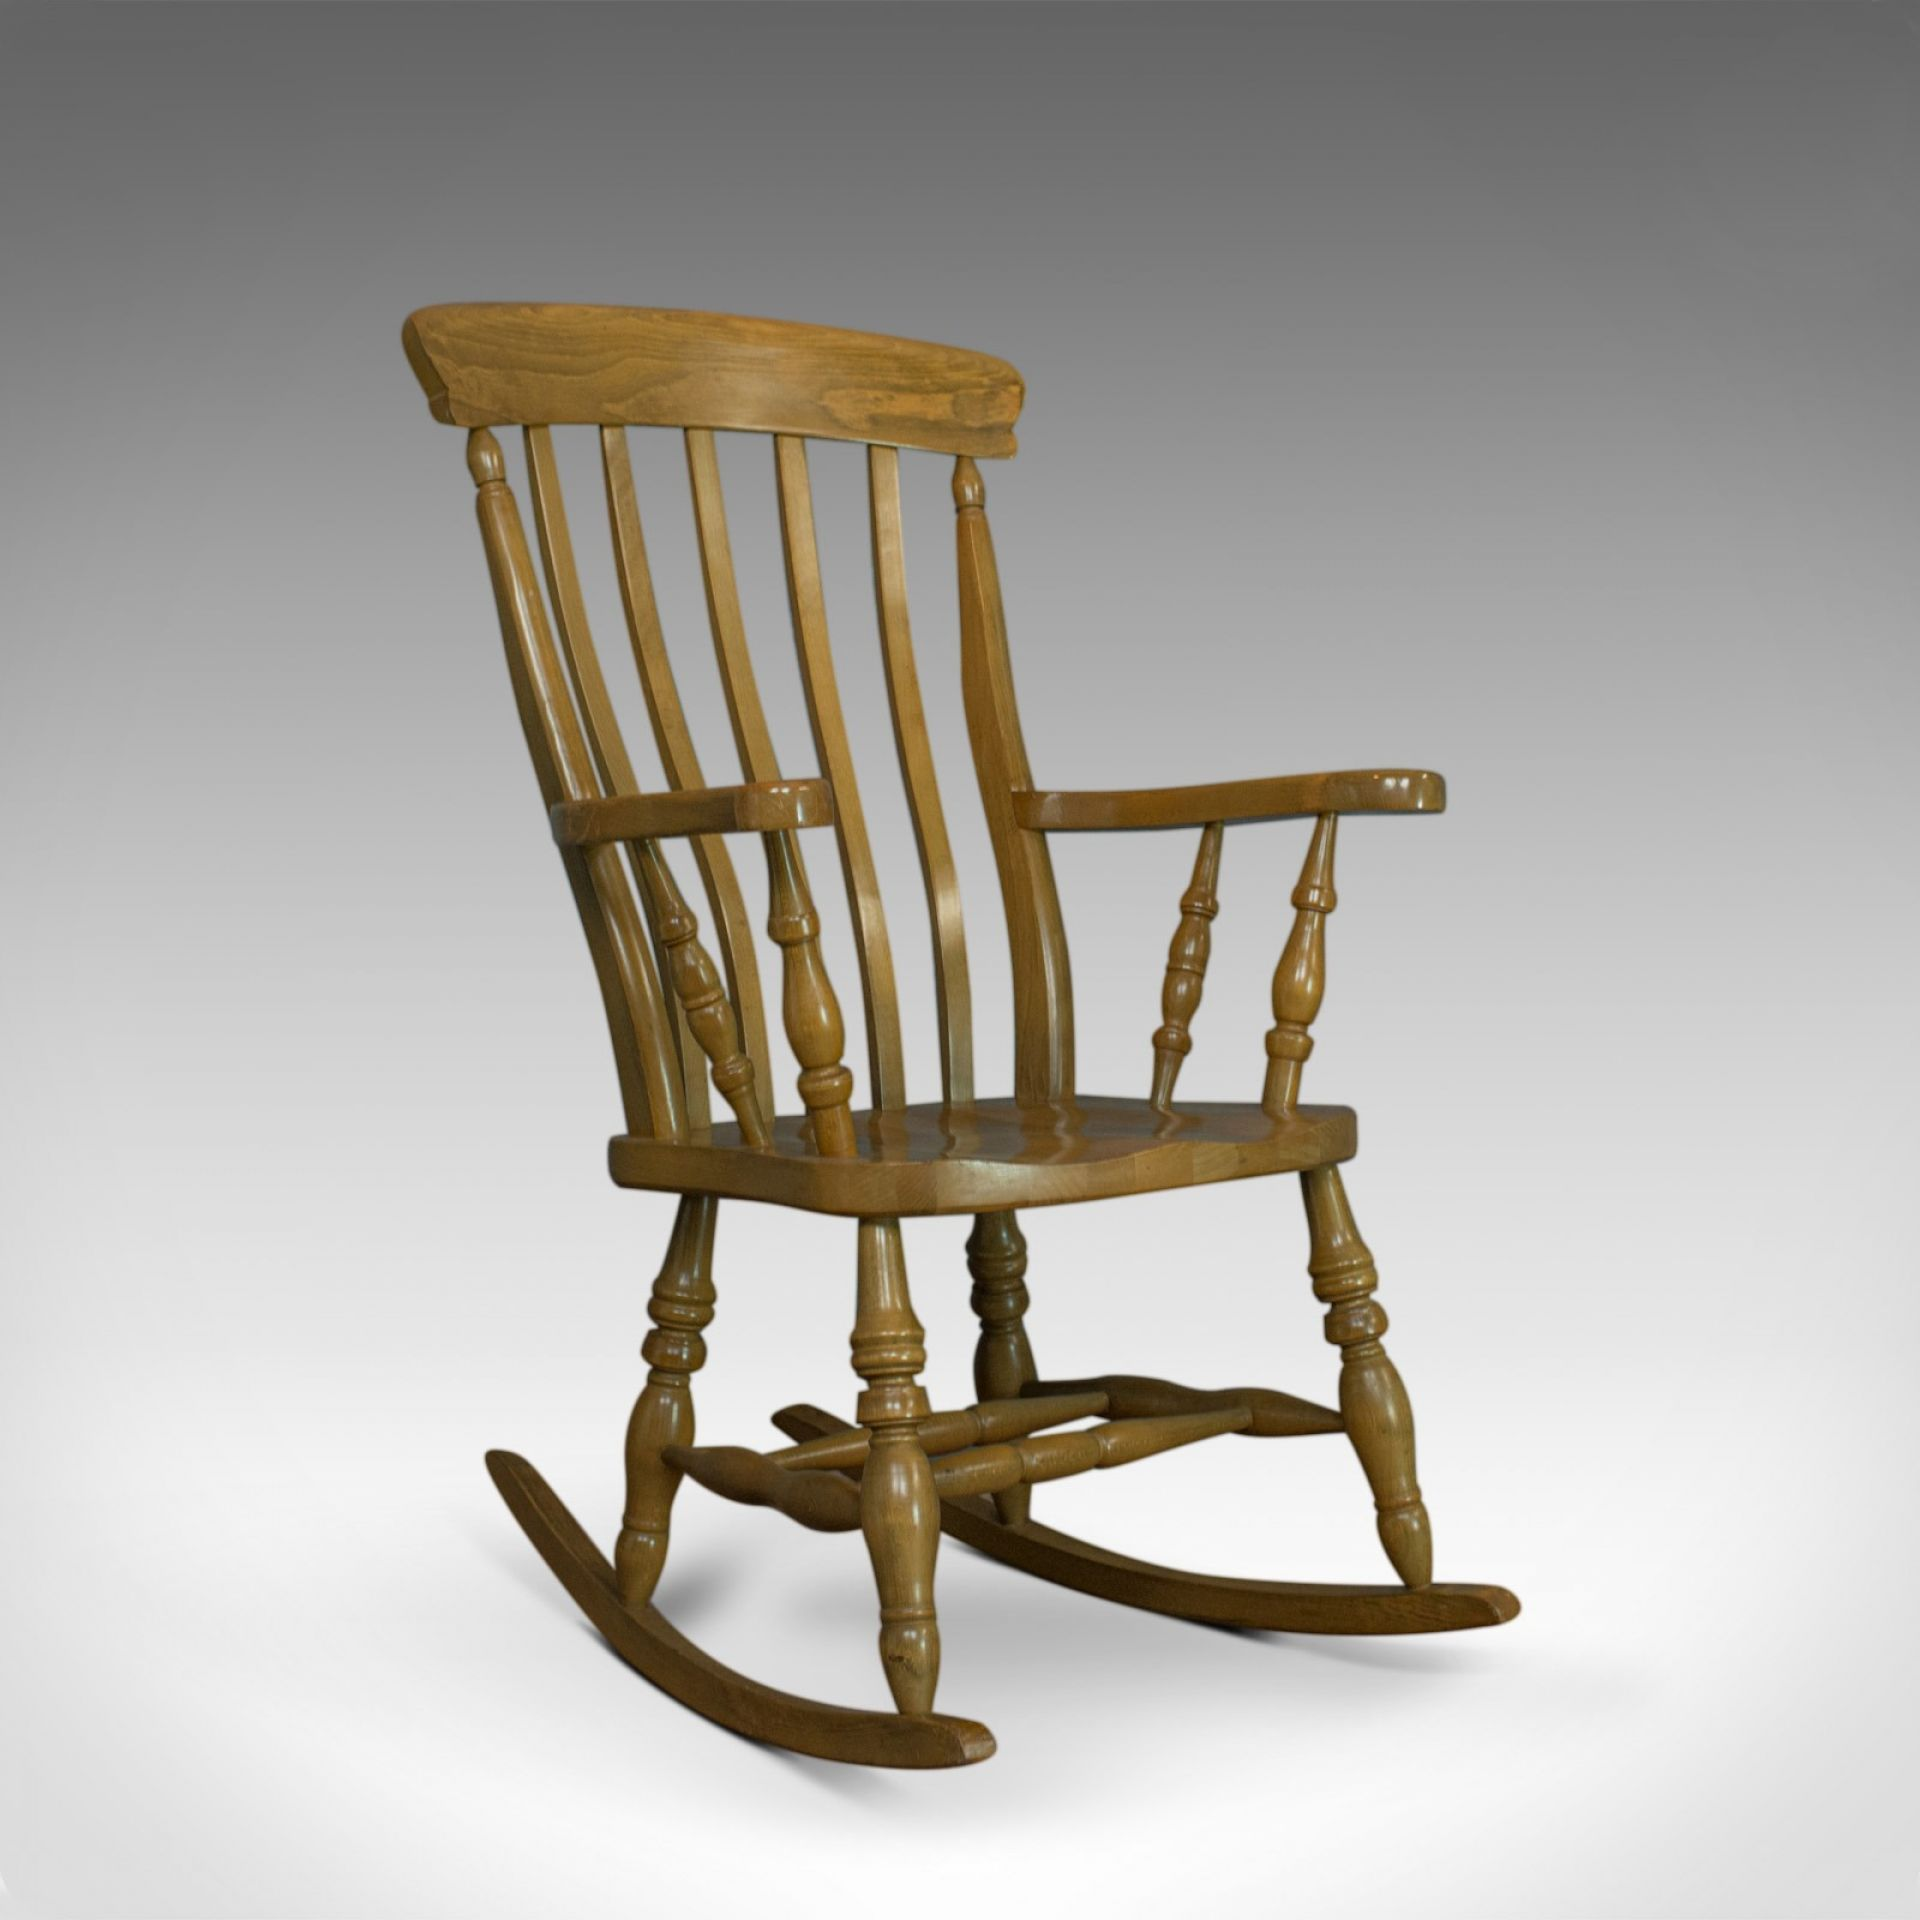 Vintage Windsor Rocking Chair, English, Beech, Armchair, Late C20th